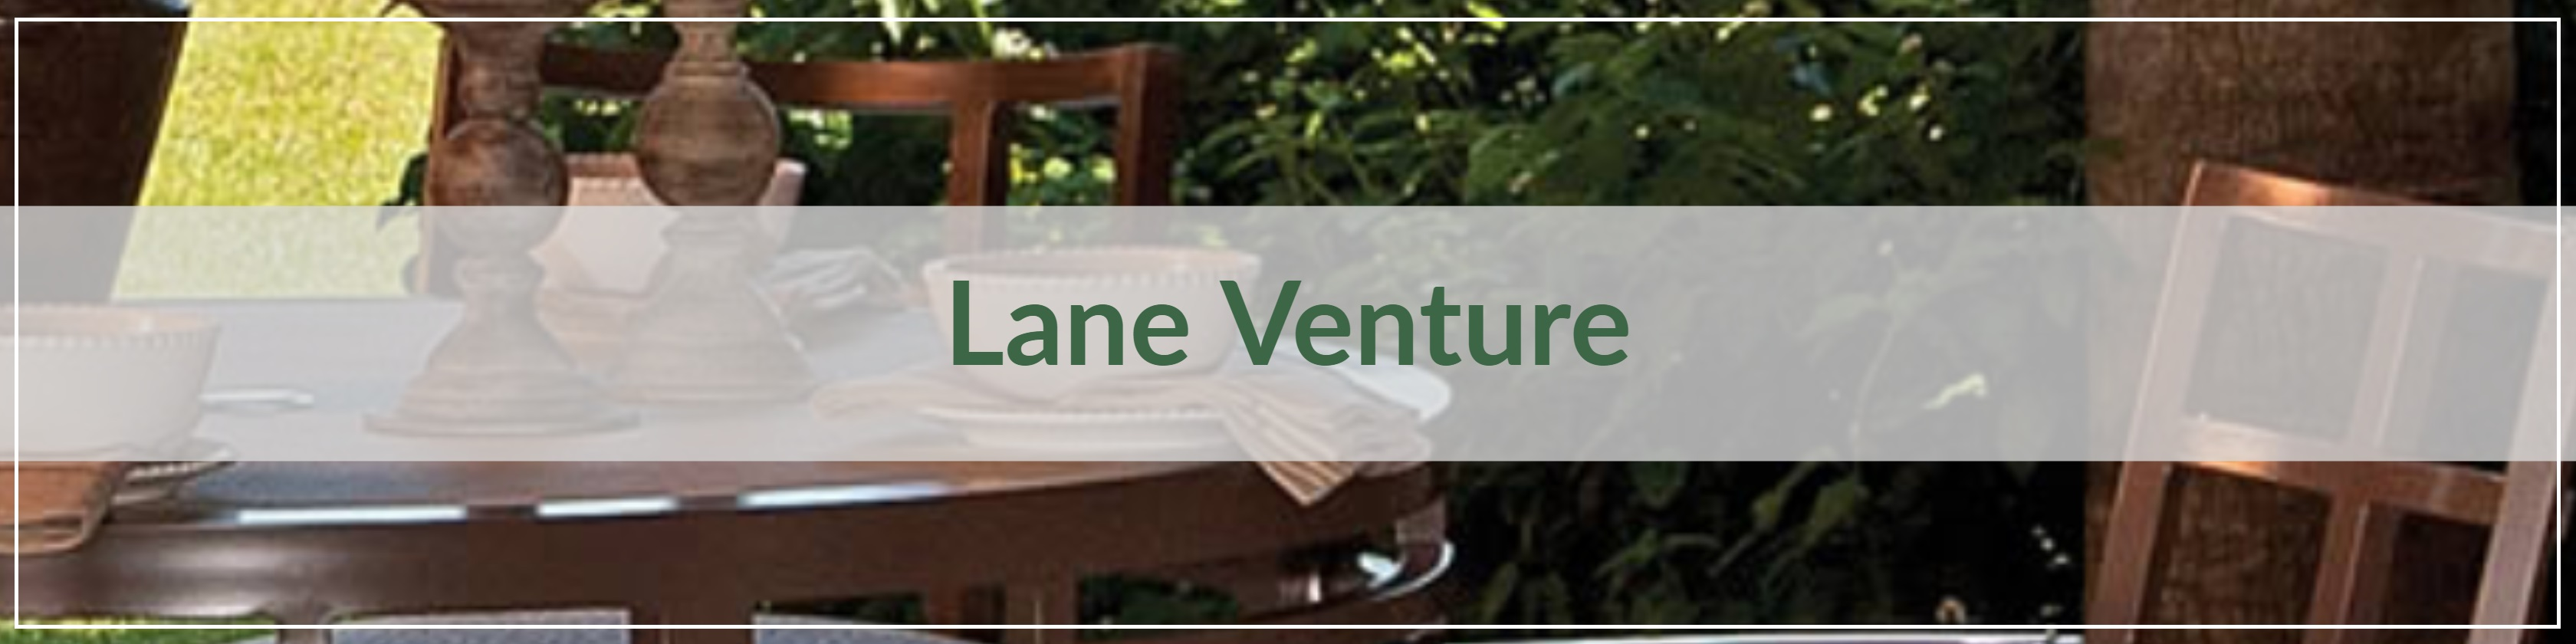 Lane Venture Cast Aluminum Dining